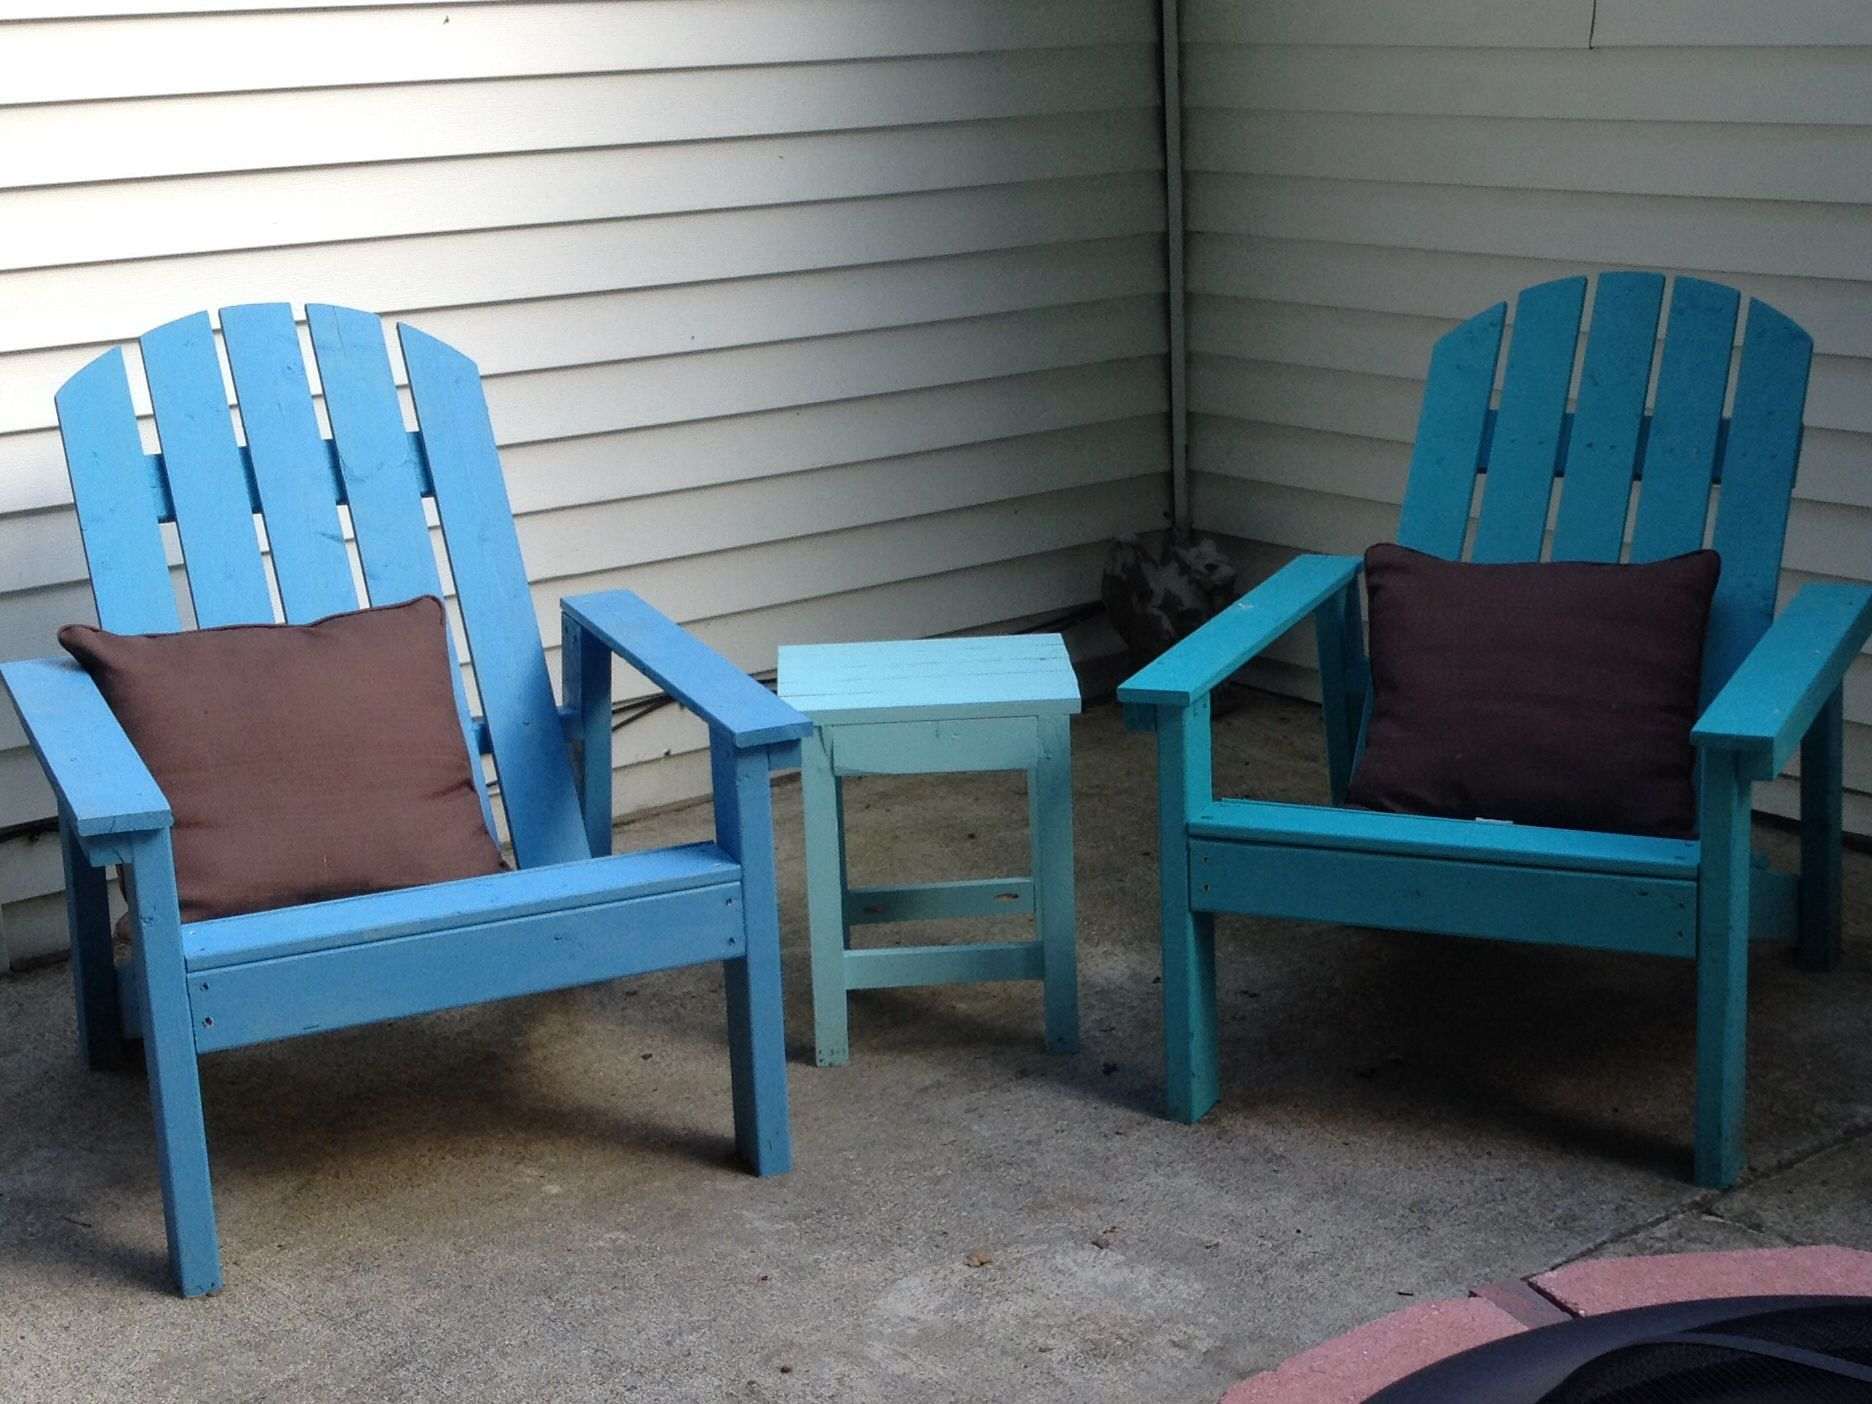 Adirondack chairs and table, I made from Ana White's chair